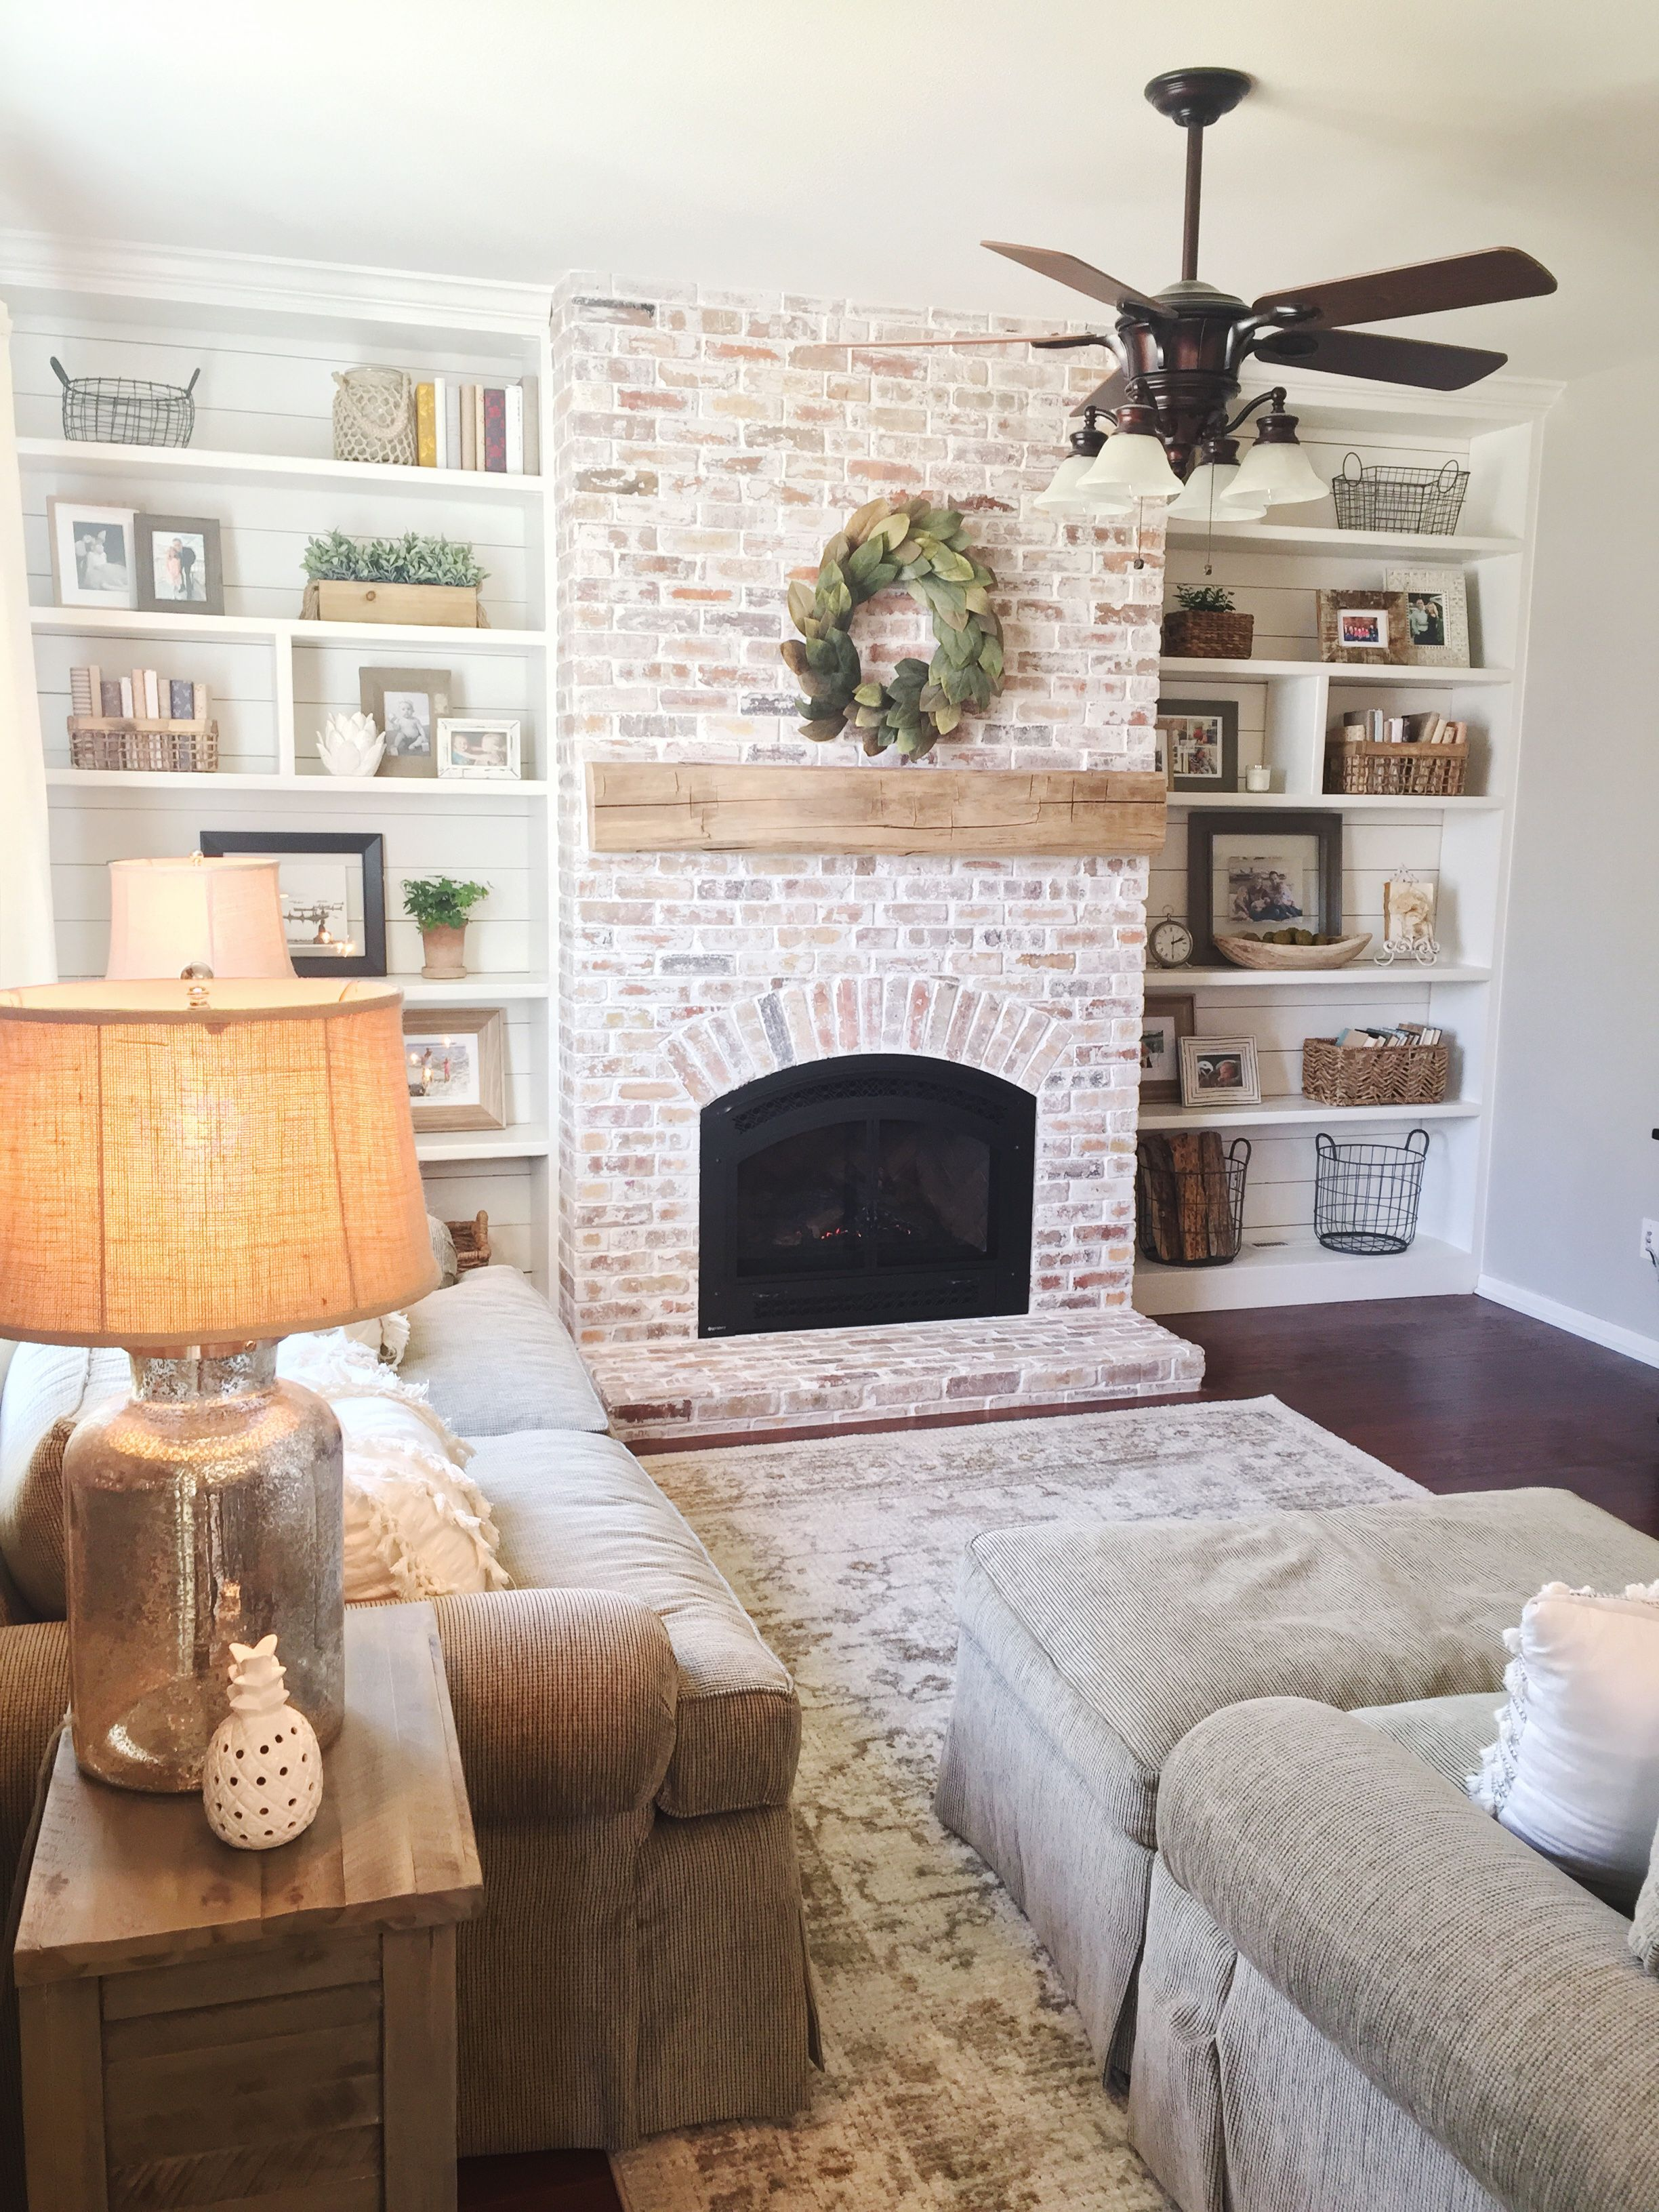 Built In Bookshelves Shiplap Whitewash Brick Fireplace Rustic Mantle Modern Farmhouse Living Room Decor Farmhouse Decor Living Room Farm House Living Room